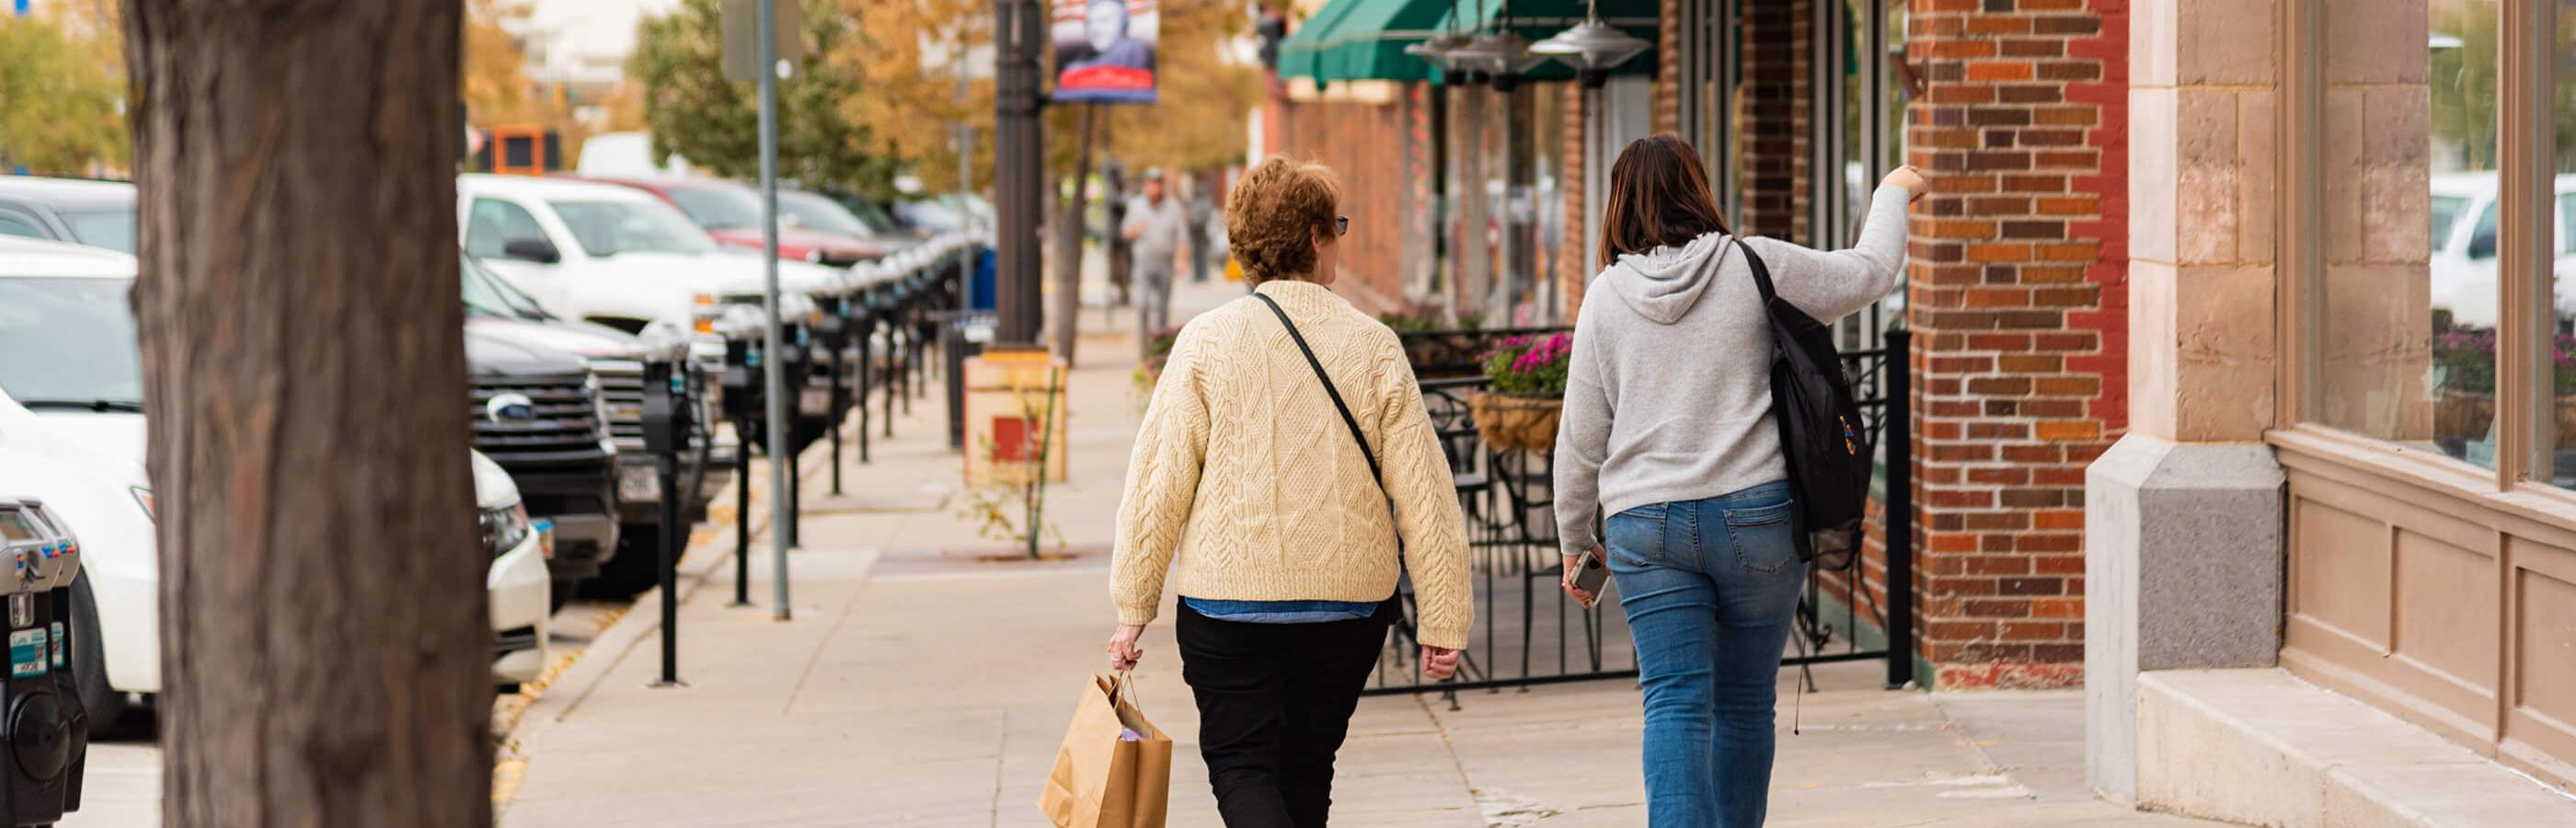 Two women shopping in Downtown Rapid City